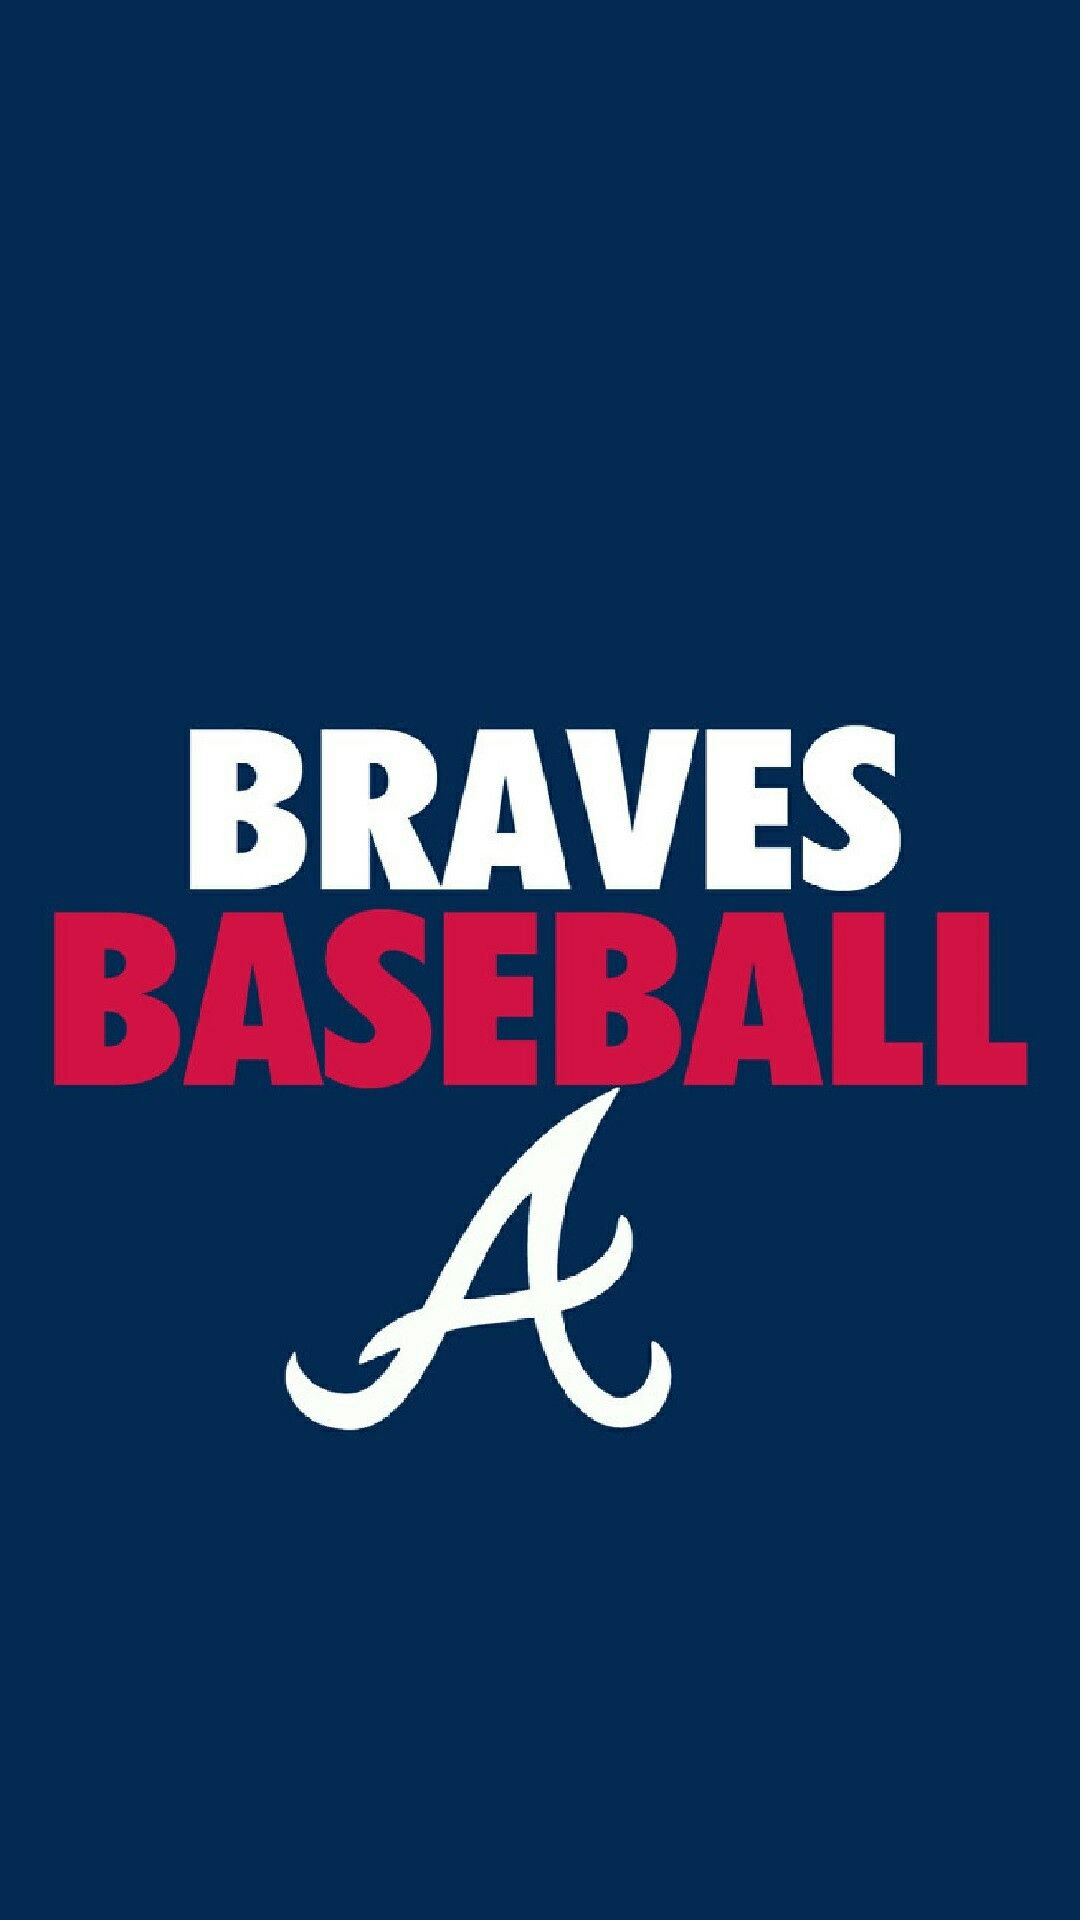 Atlanta Braves Atlanta Braves Wallpaper Atlanta Braves Braves Baseball